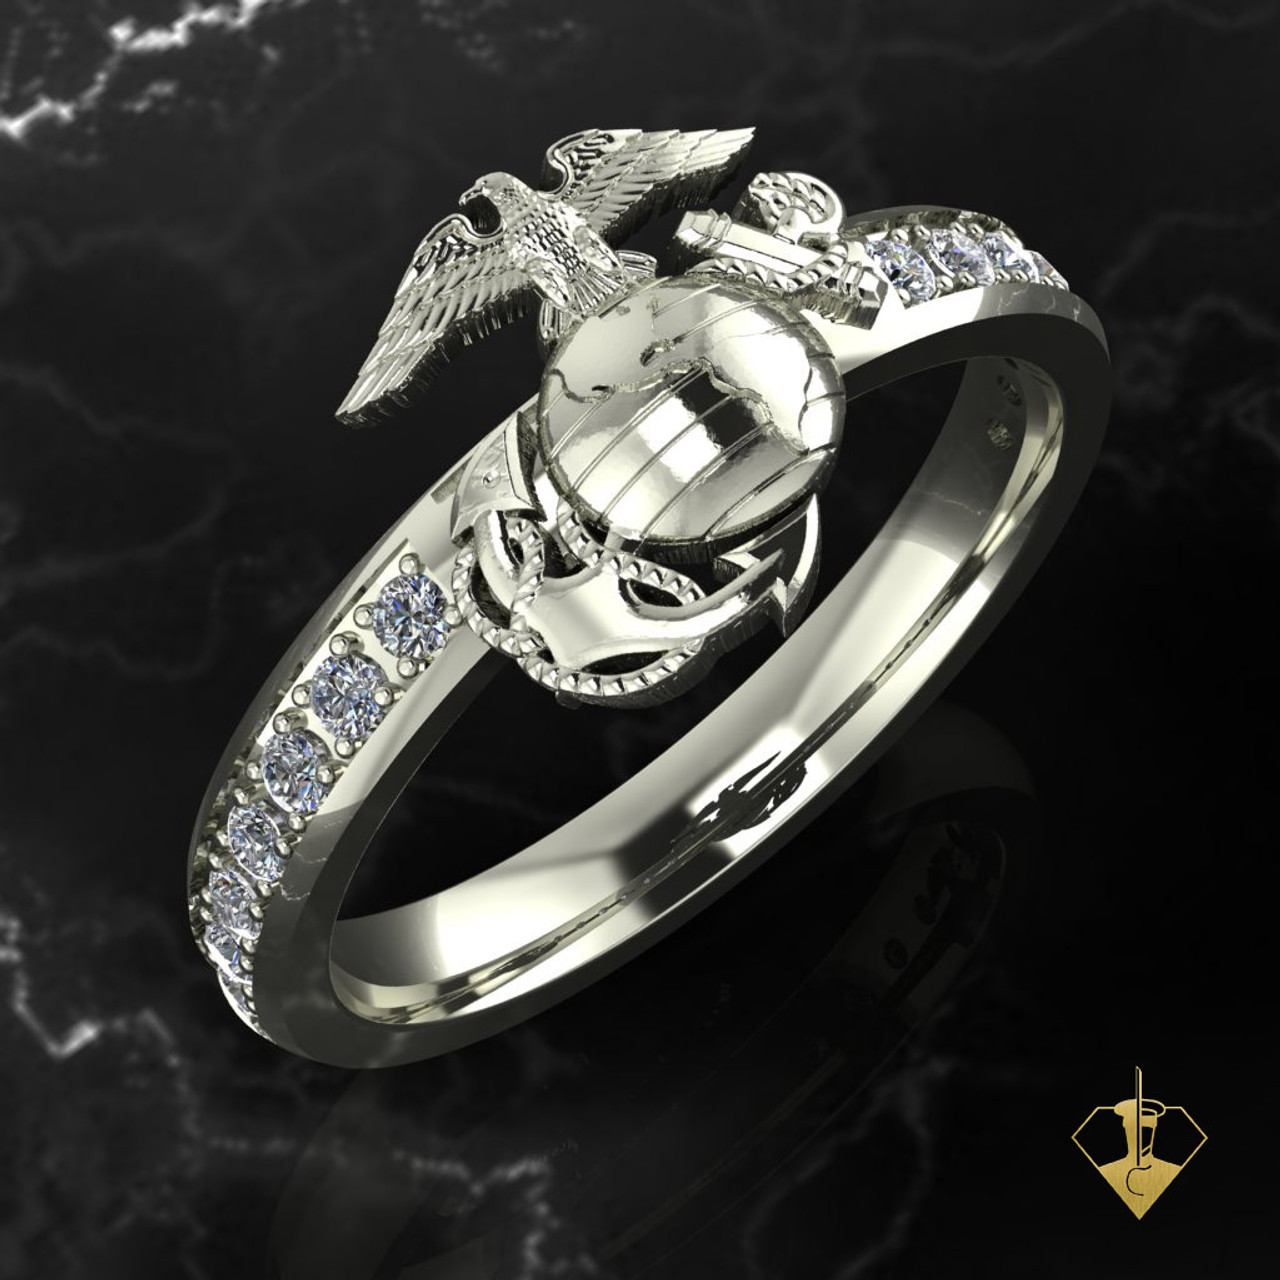 White Gold or Silver Woman Marine Corps Diamond Band featuring the Eagle, Globe & Anchor